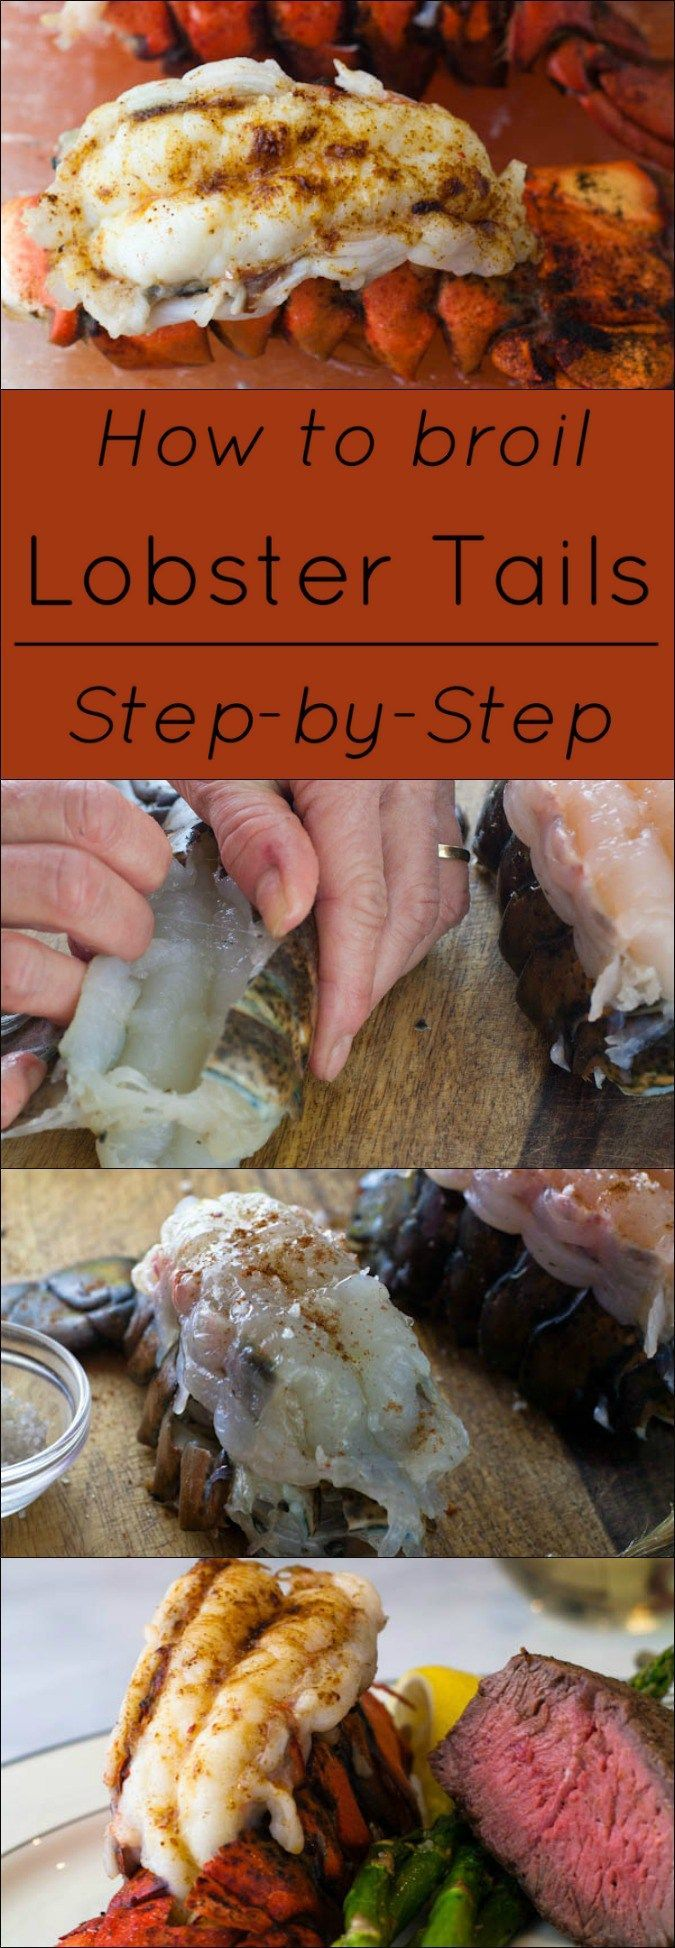 How To Use The Shell Of The Lobster As A Broiling Rack Step By Step Instructions Lobster Recipes Tail Grilled Lobster Tail How To Cook Lobster